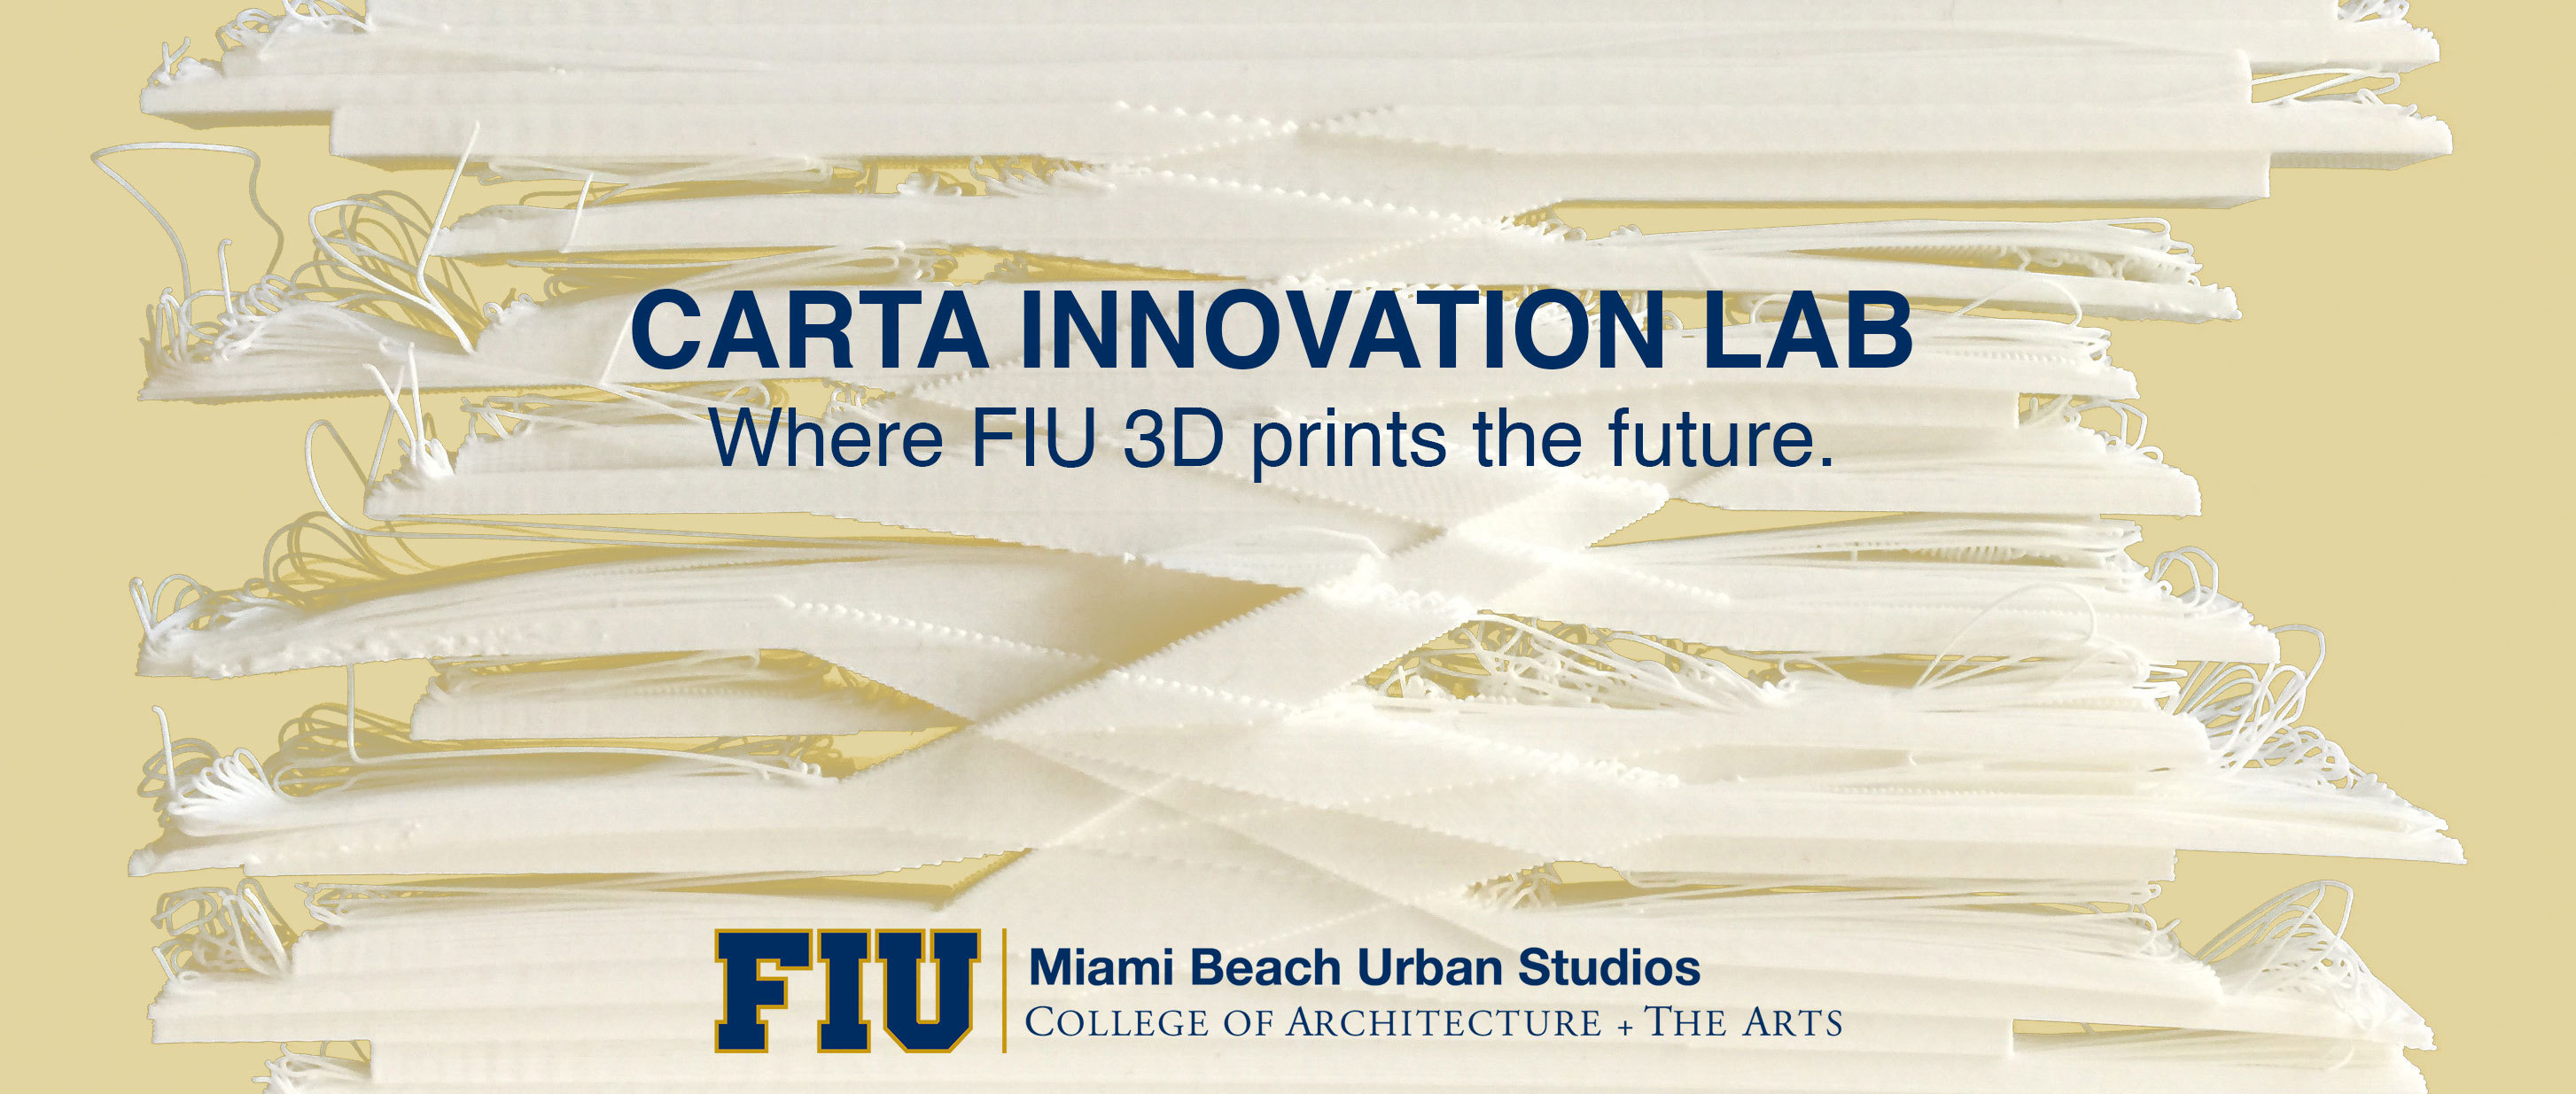 Florida International University Partners with MakerBot to Open 3D